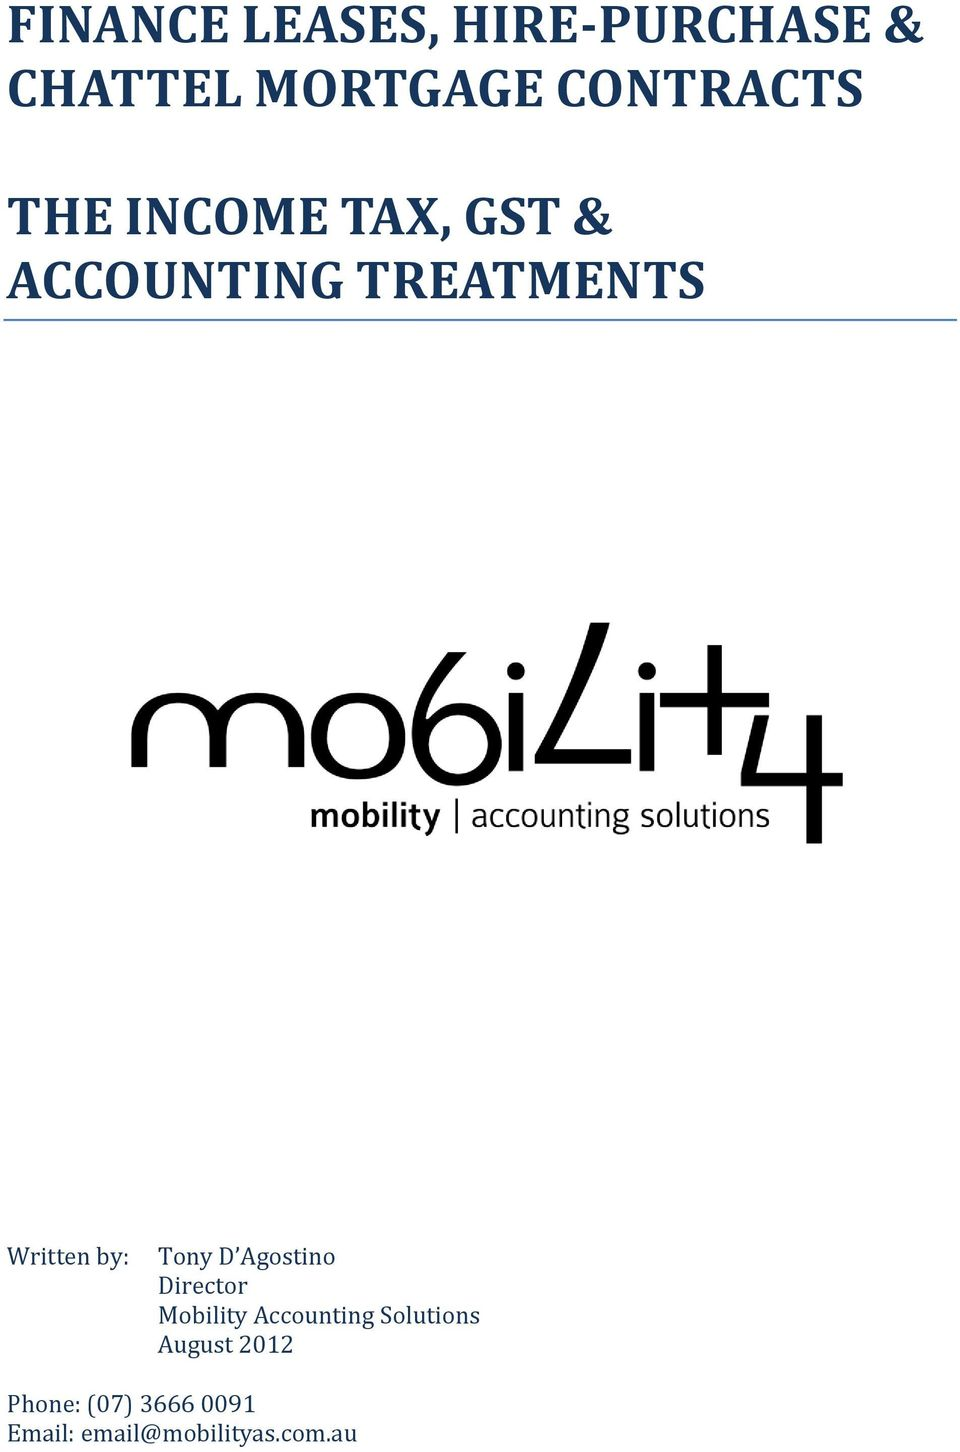 Tony D Agostino Director Mobility Accounting Solutions